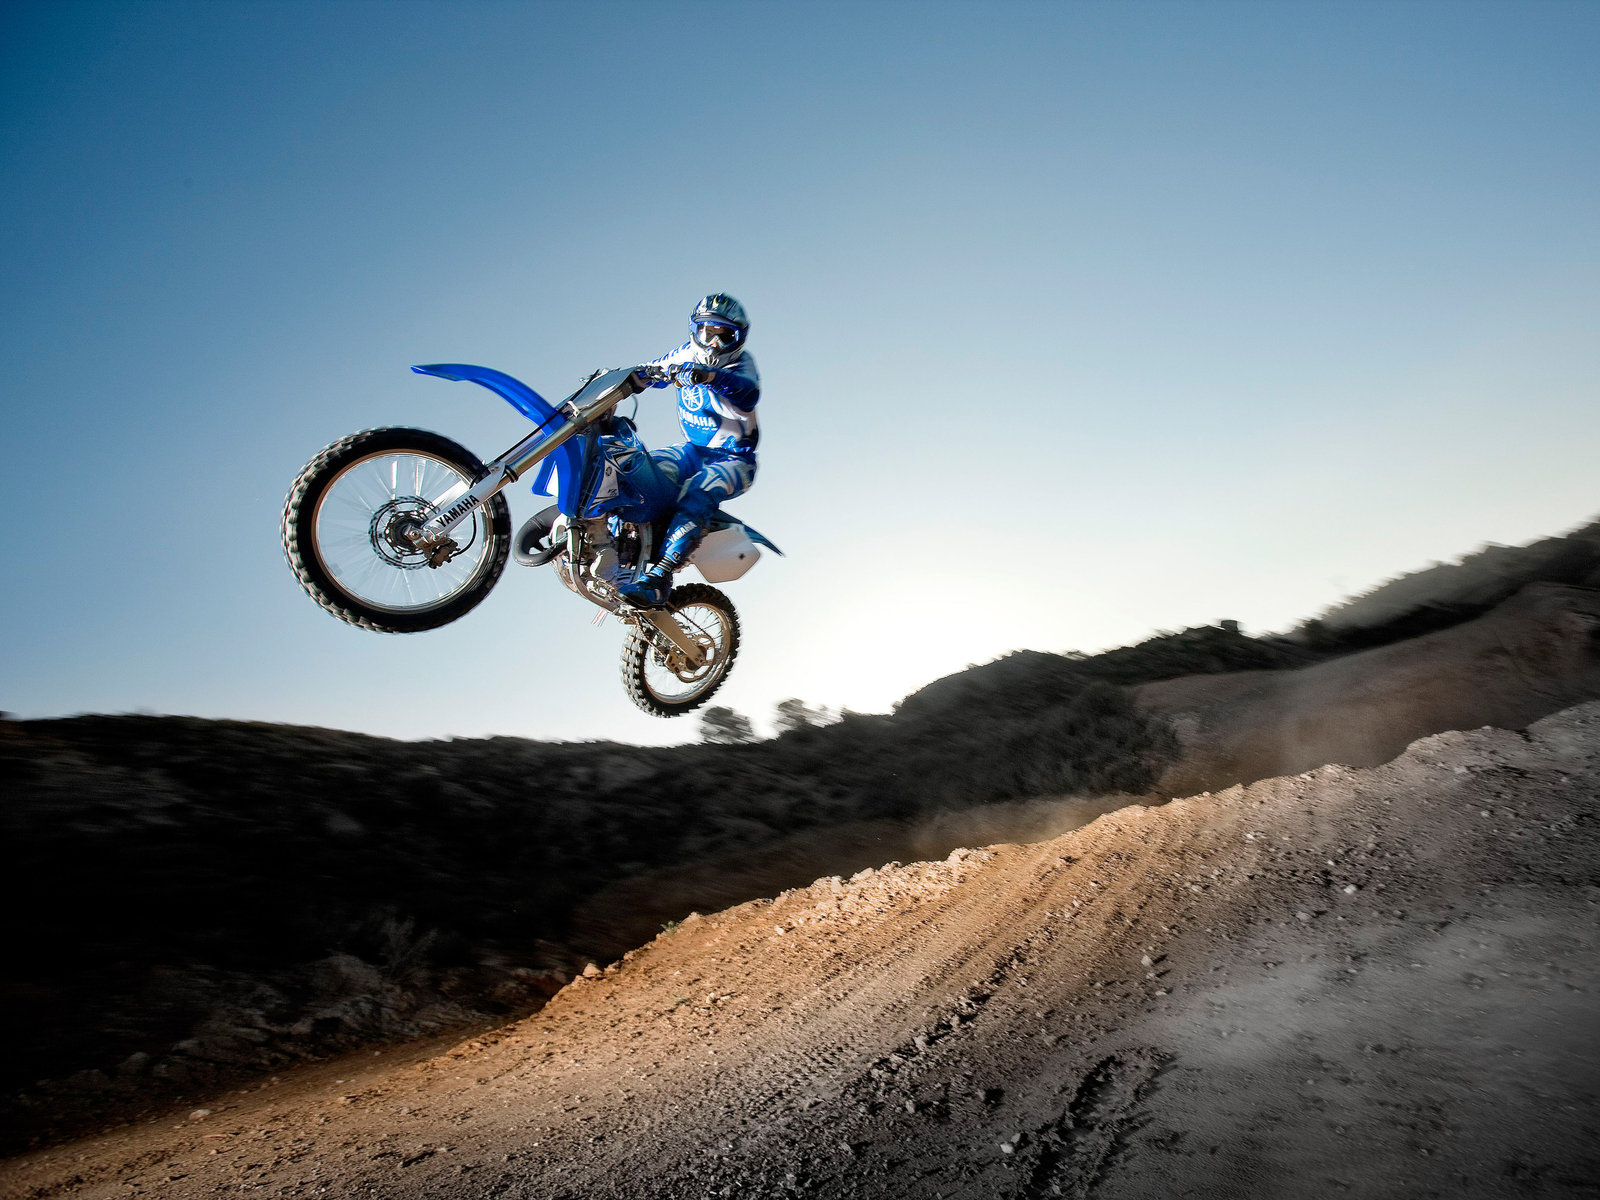 2011 Yamaha YZ 125 Wallpaper - Mbike.